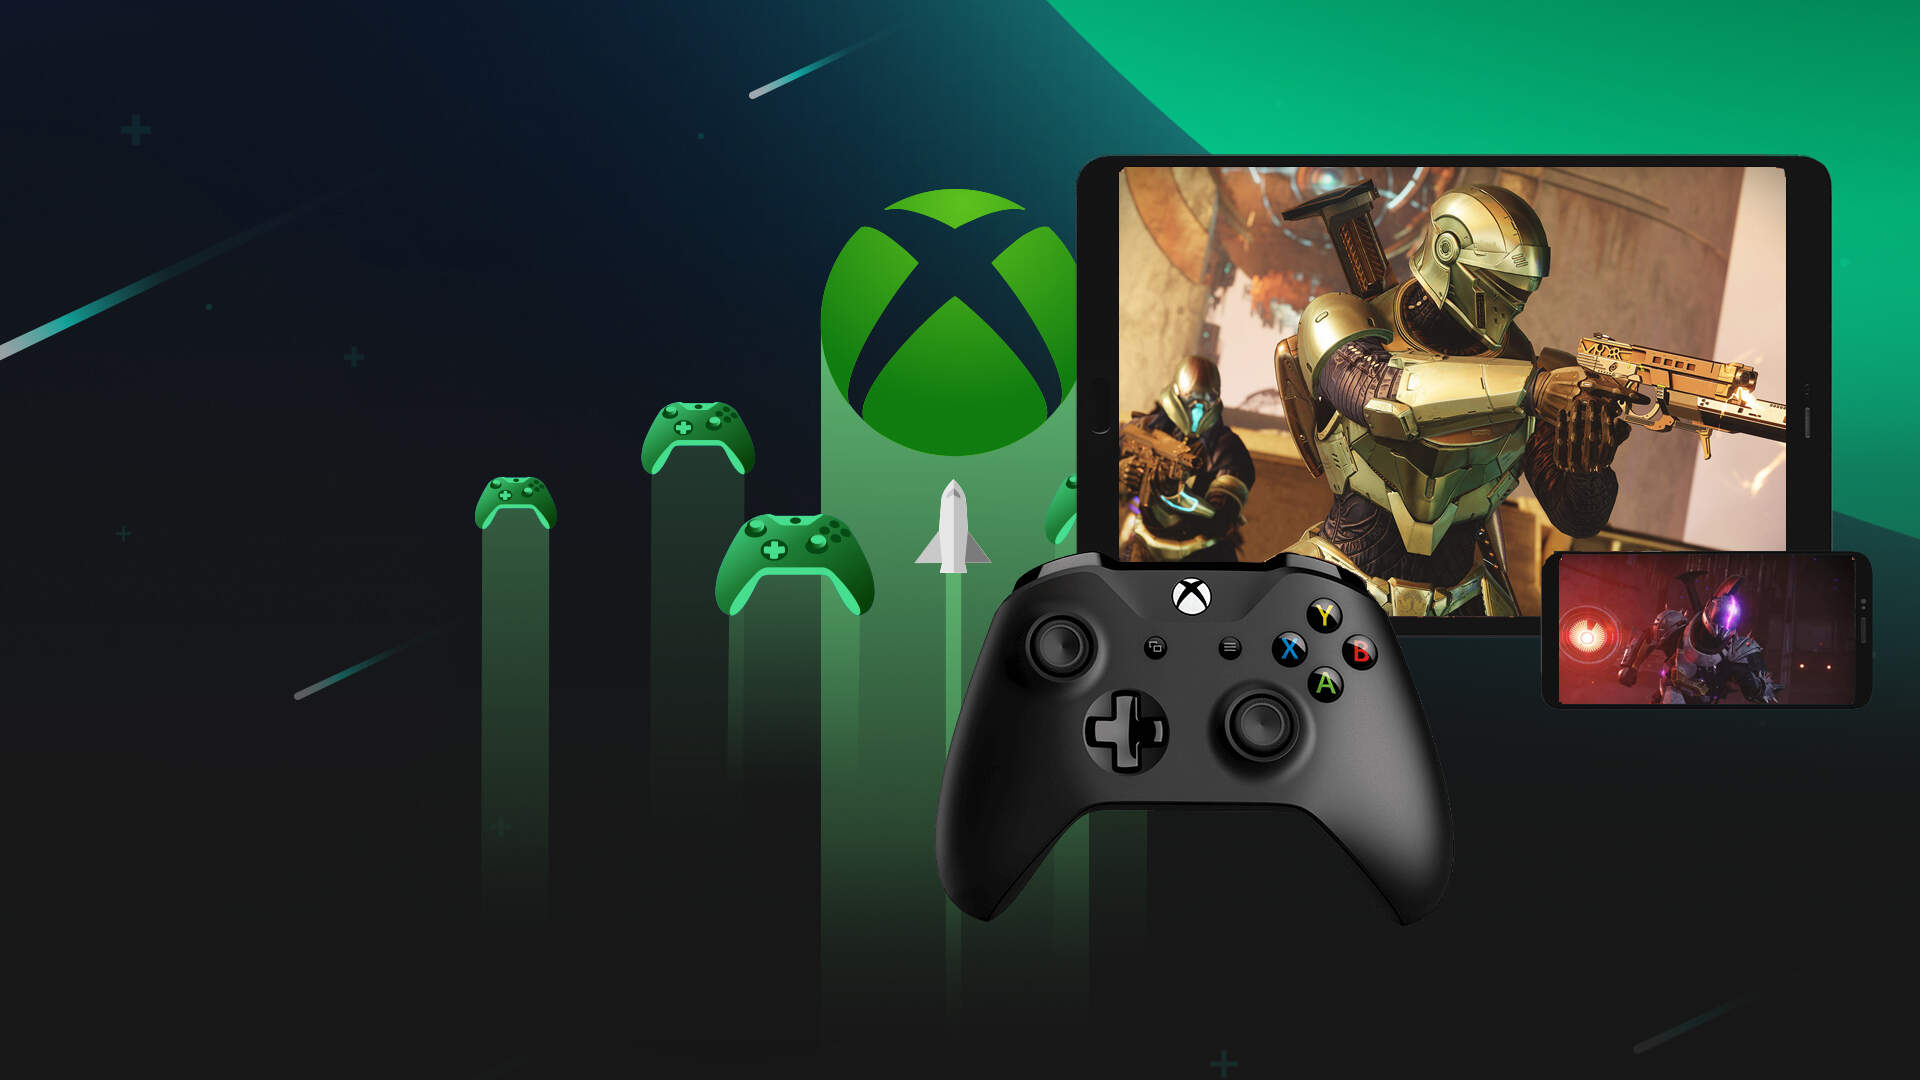 Microsoft's xCloud Streaming Service Expands With Destiny 2, Halo: The Master Chief Collection, and More